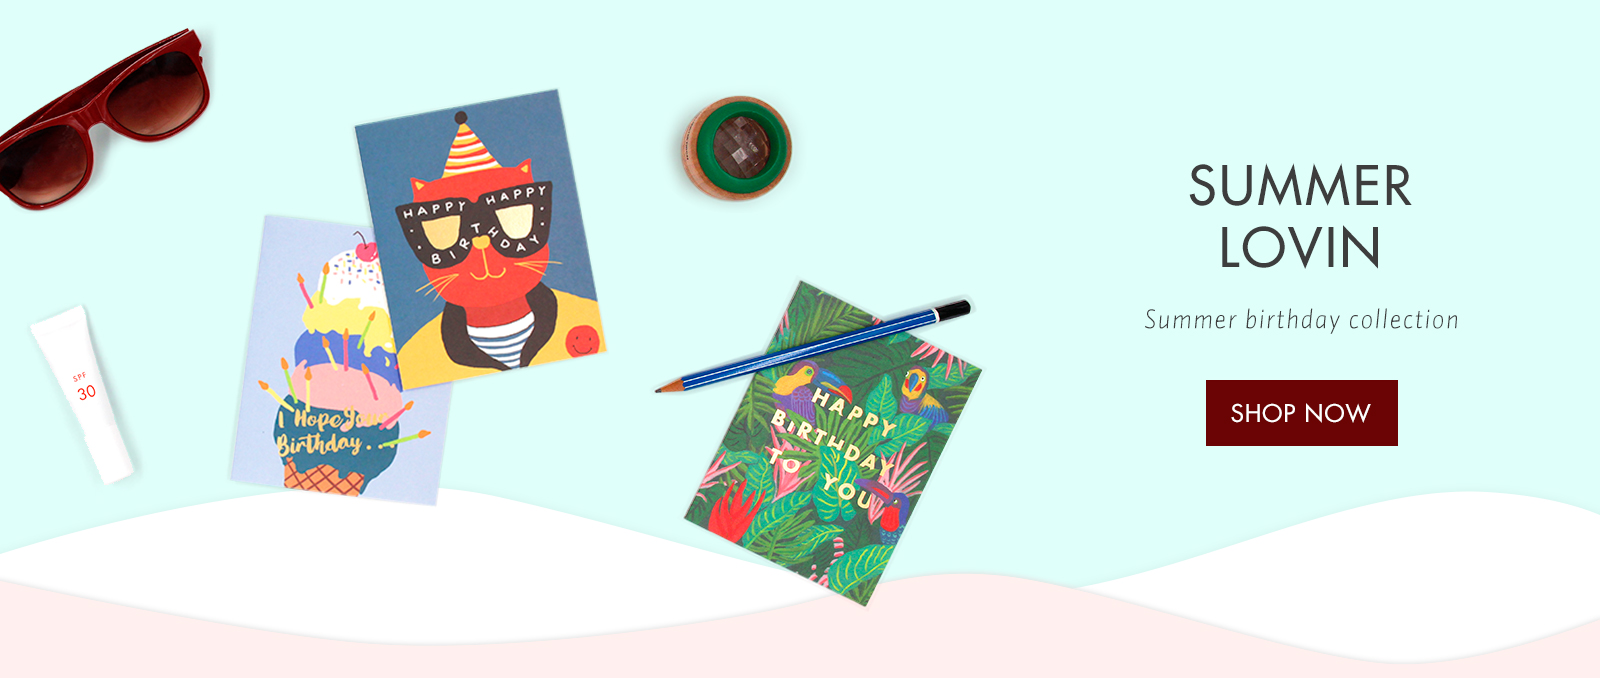 Minimalmart Devoted To Joy And Meaning Greeting Cards And Stationery